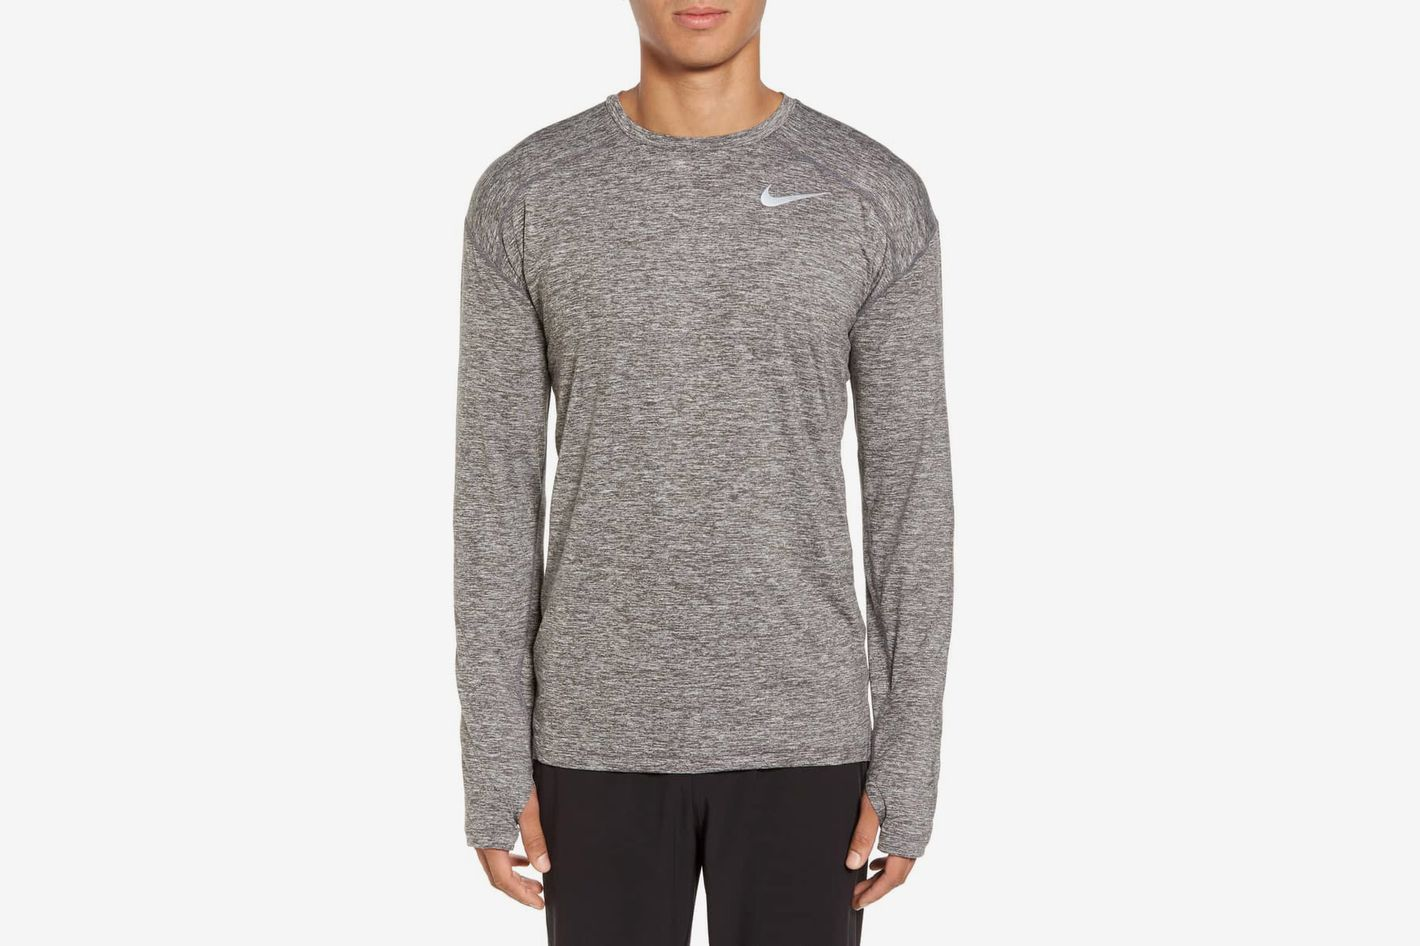 Nike Dry Element Men's Long Sleeve T-Shirt